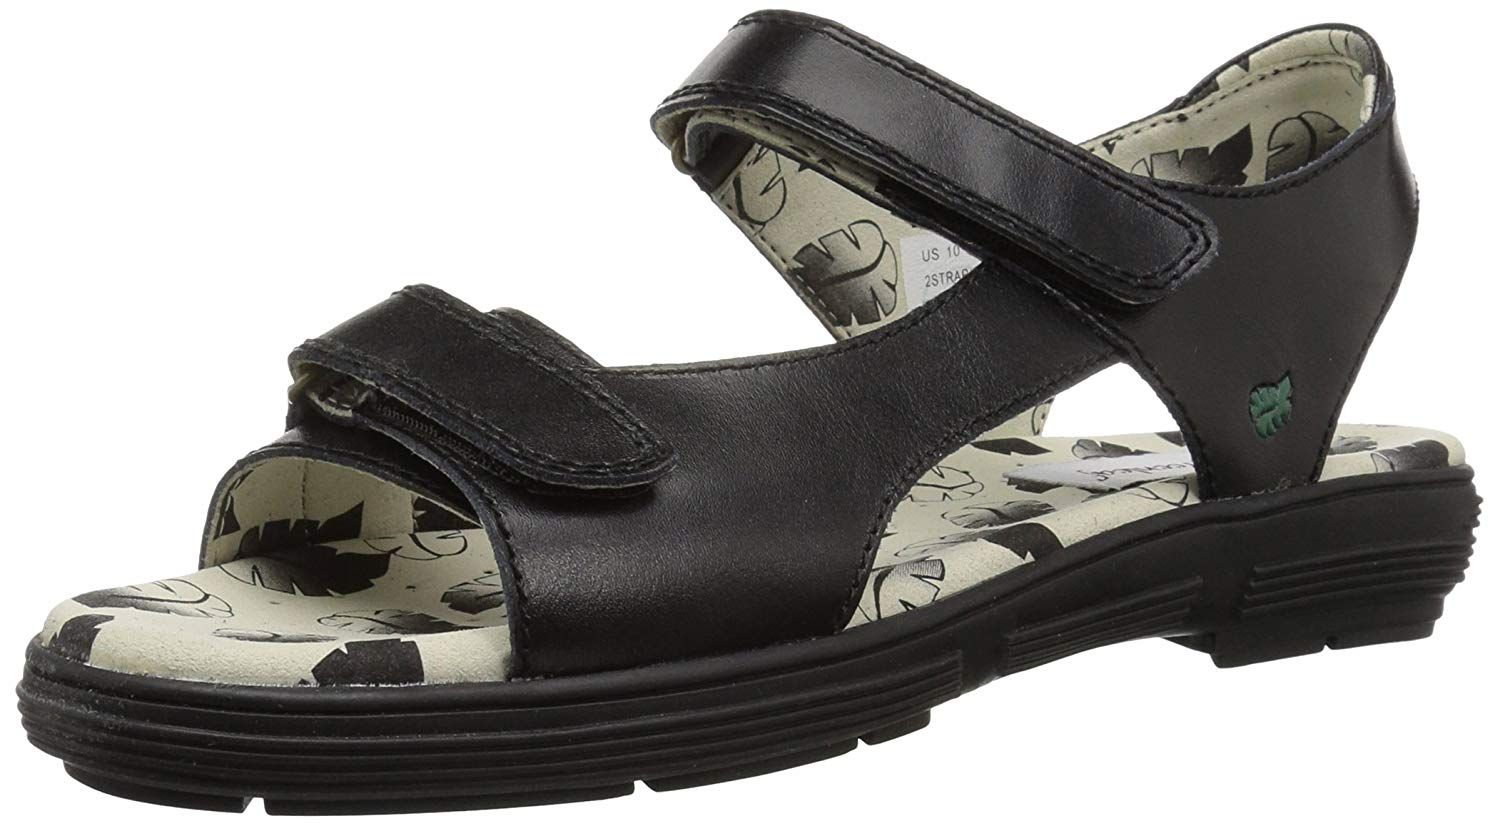 1ec62c4213d Golfstream Women s Two Strap Sport Sandal   Many thanks for viewing our  photograph. (This is an affiliate link)  womenssportsandals